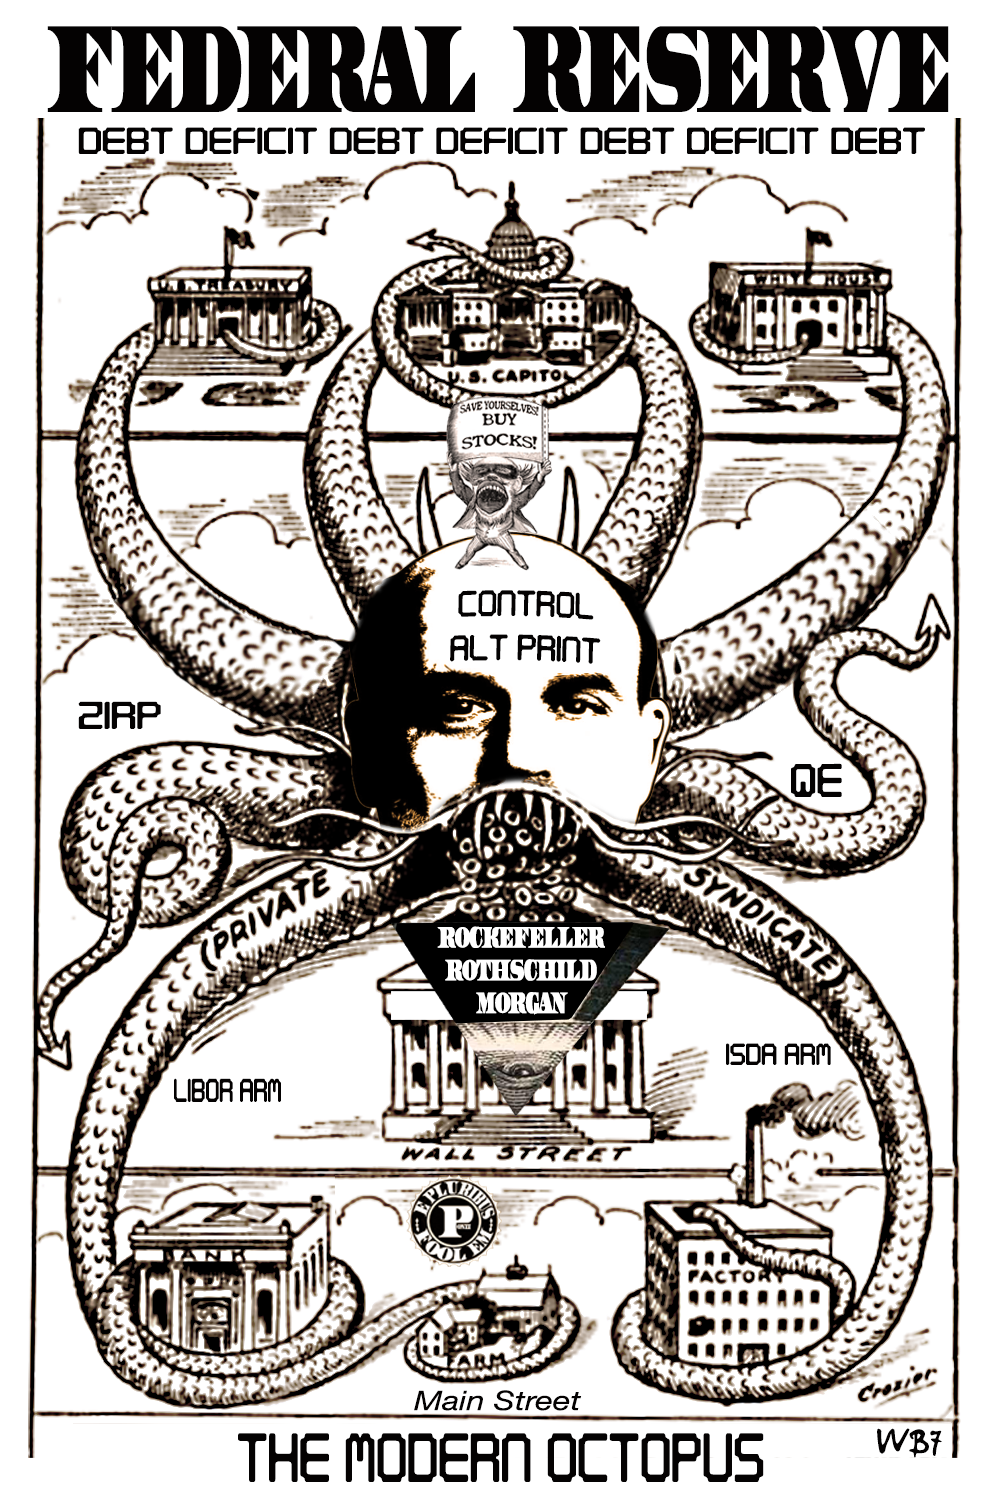 THE MODERN FEDERAL RESERVE OCTOPUS